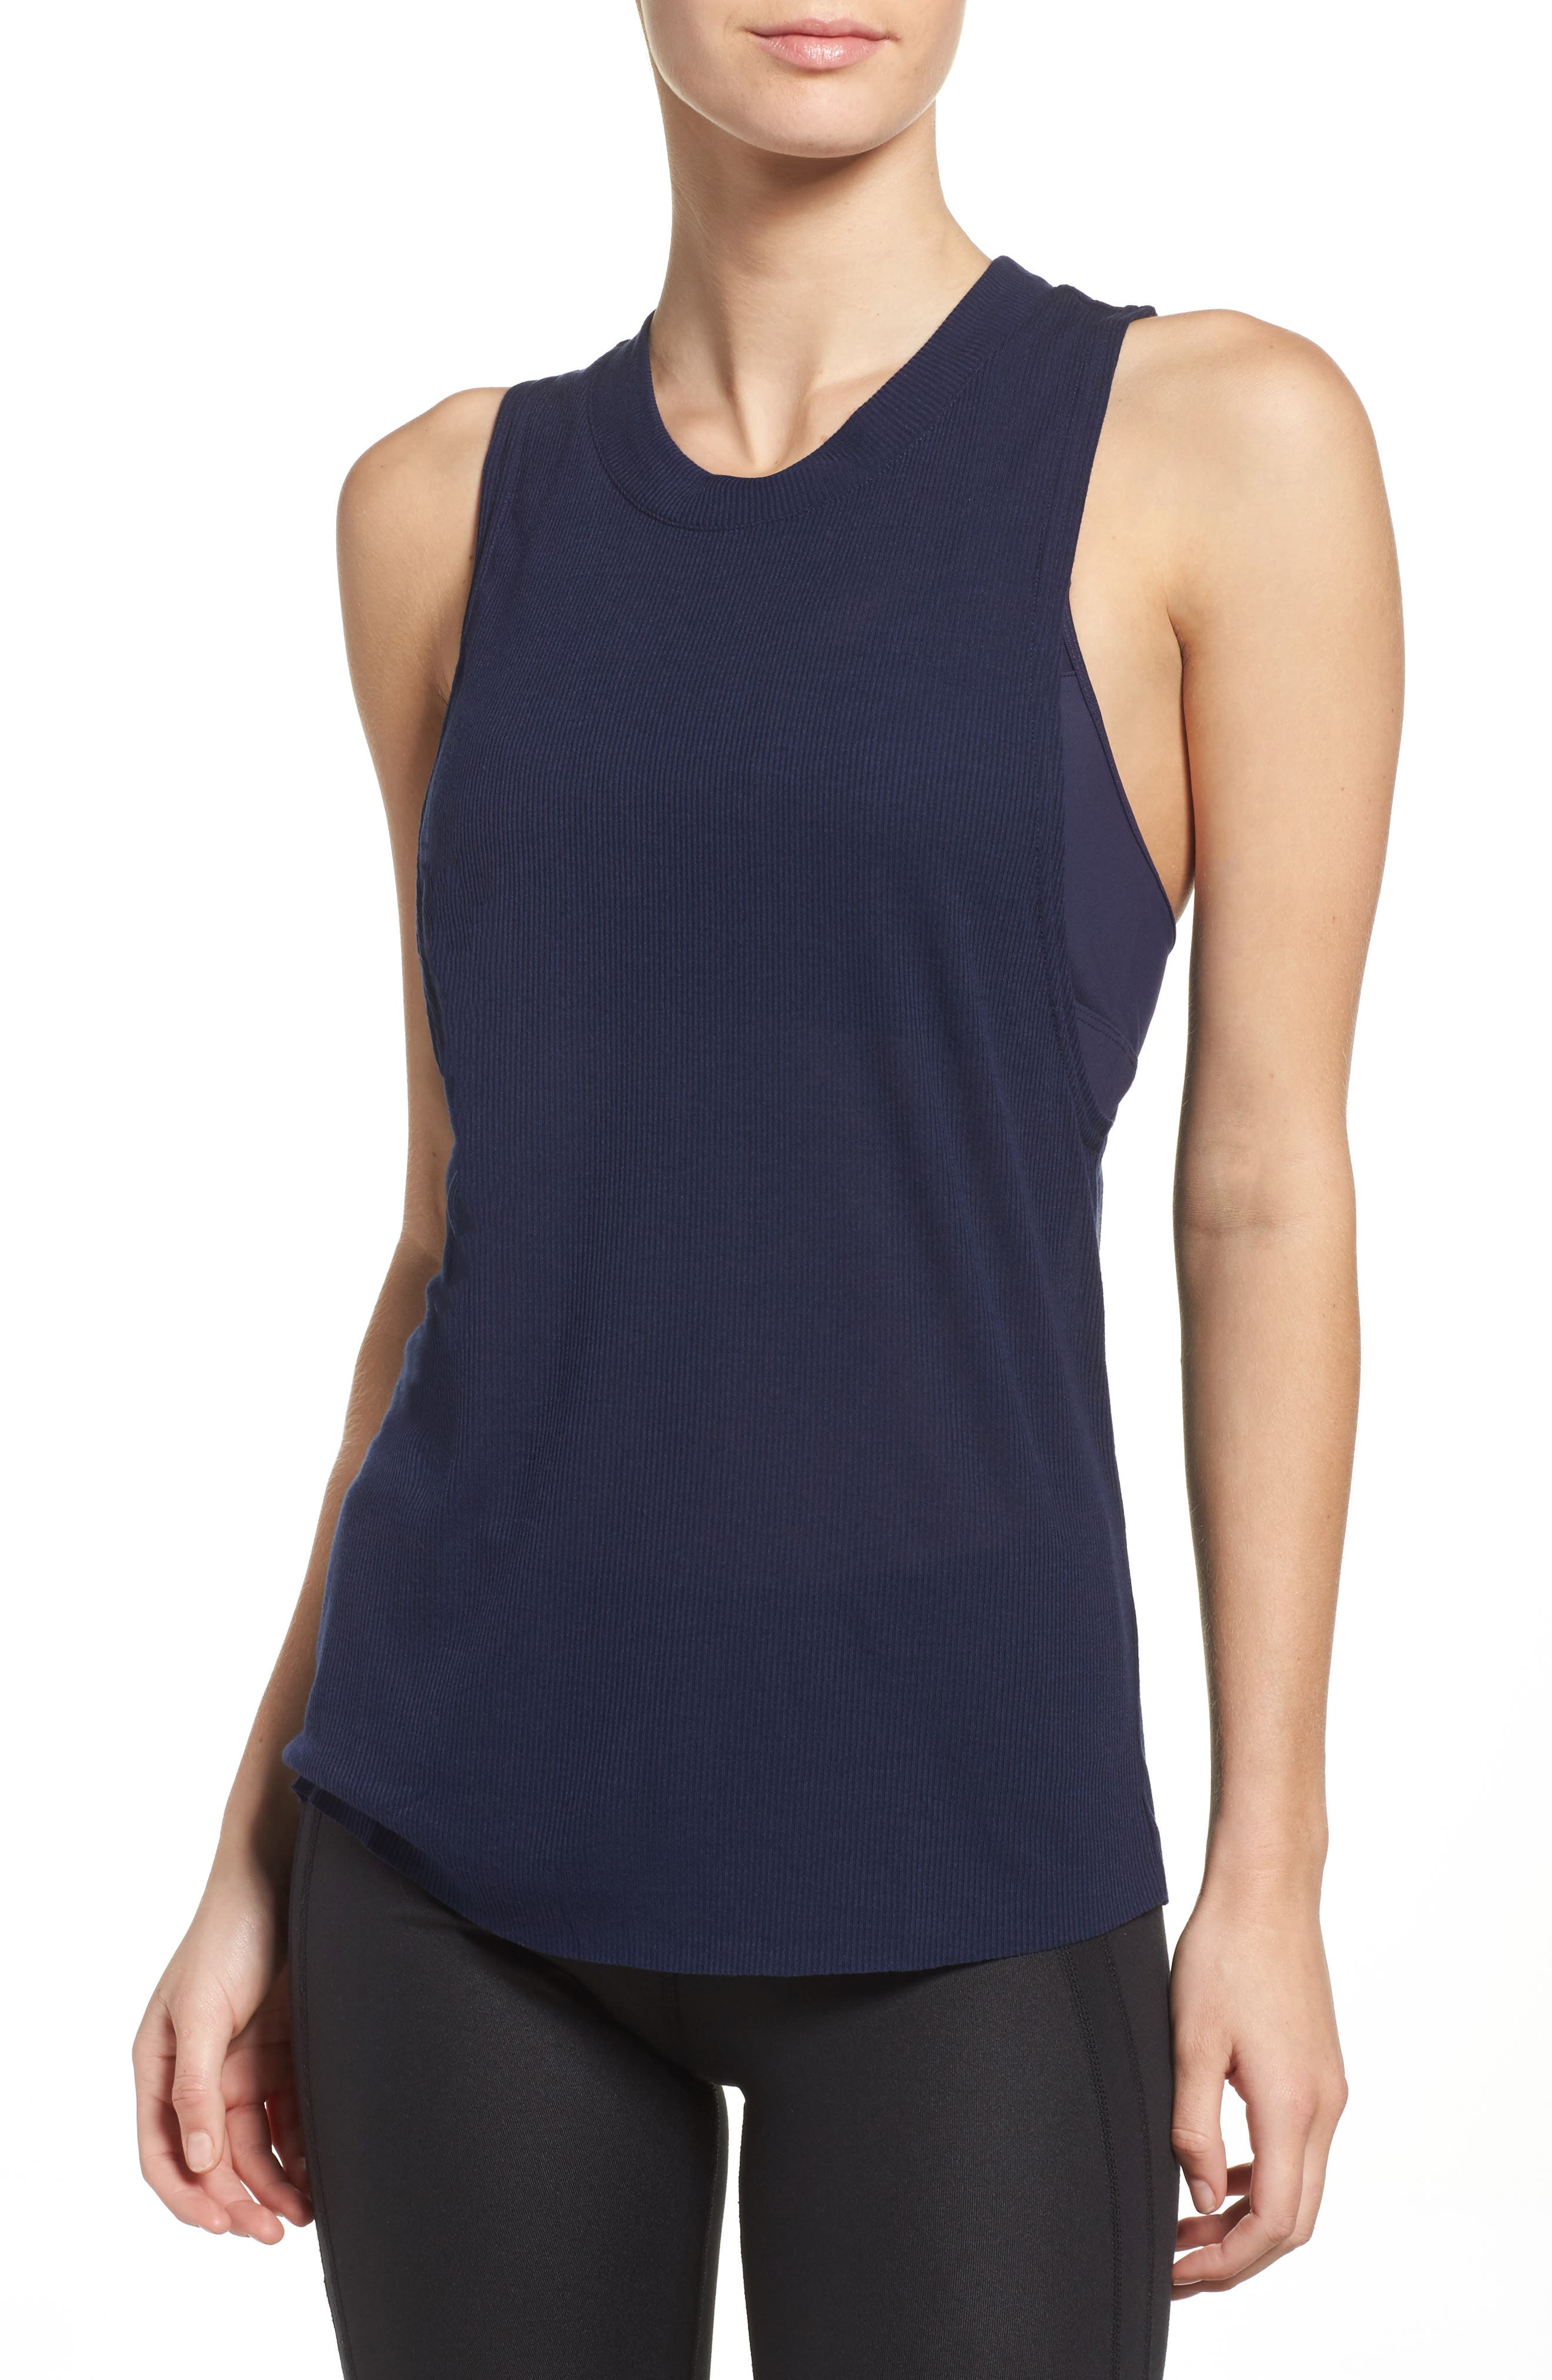 Main Image - Alo Heat Wave Ribbed Muscle Tee